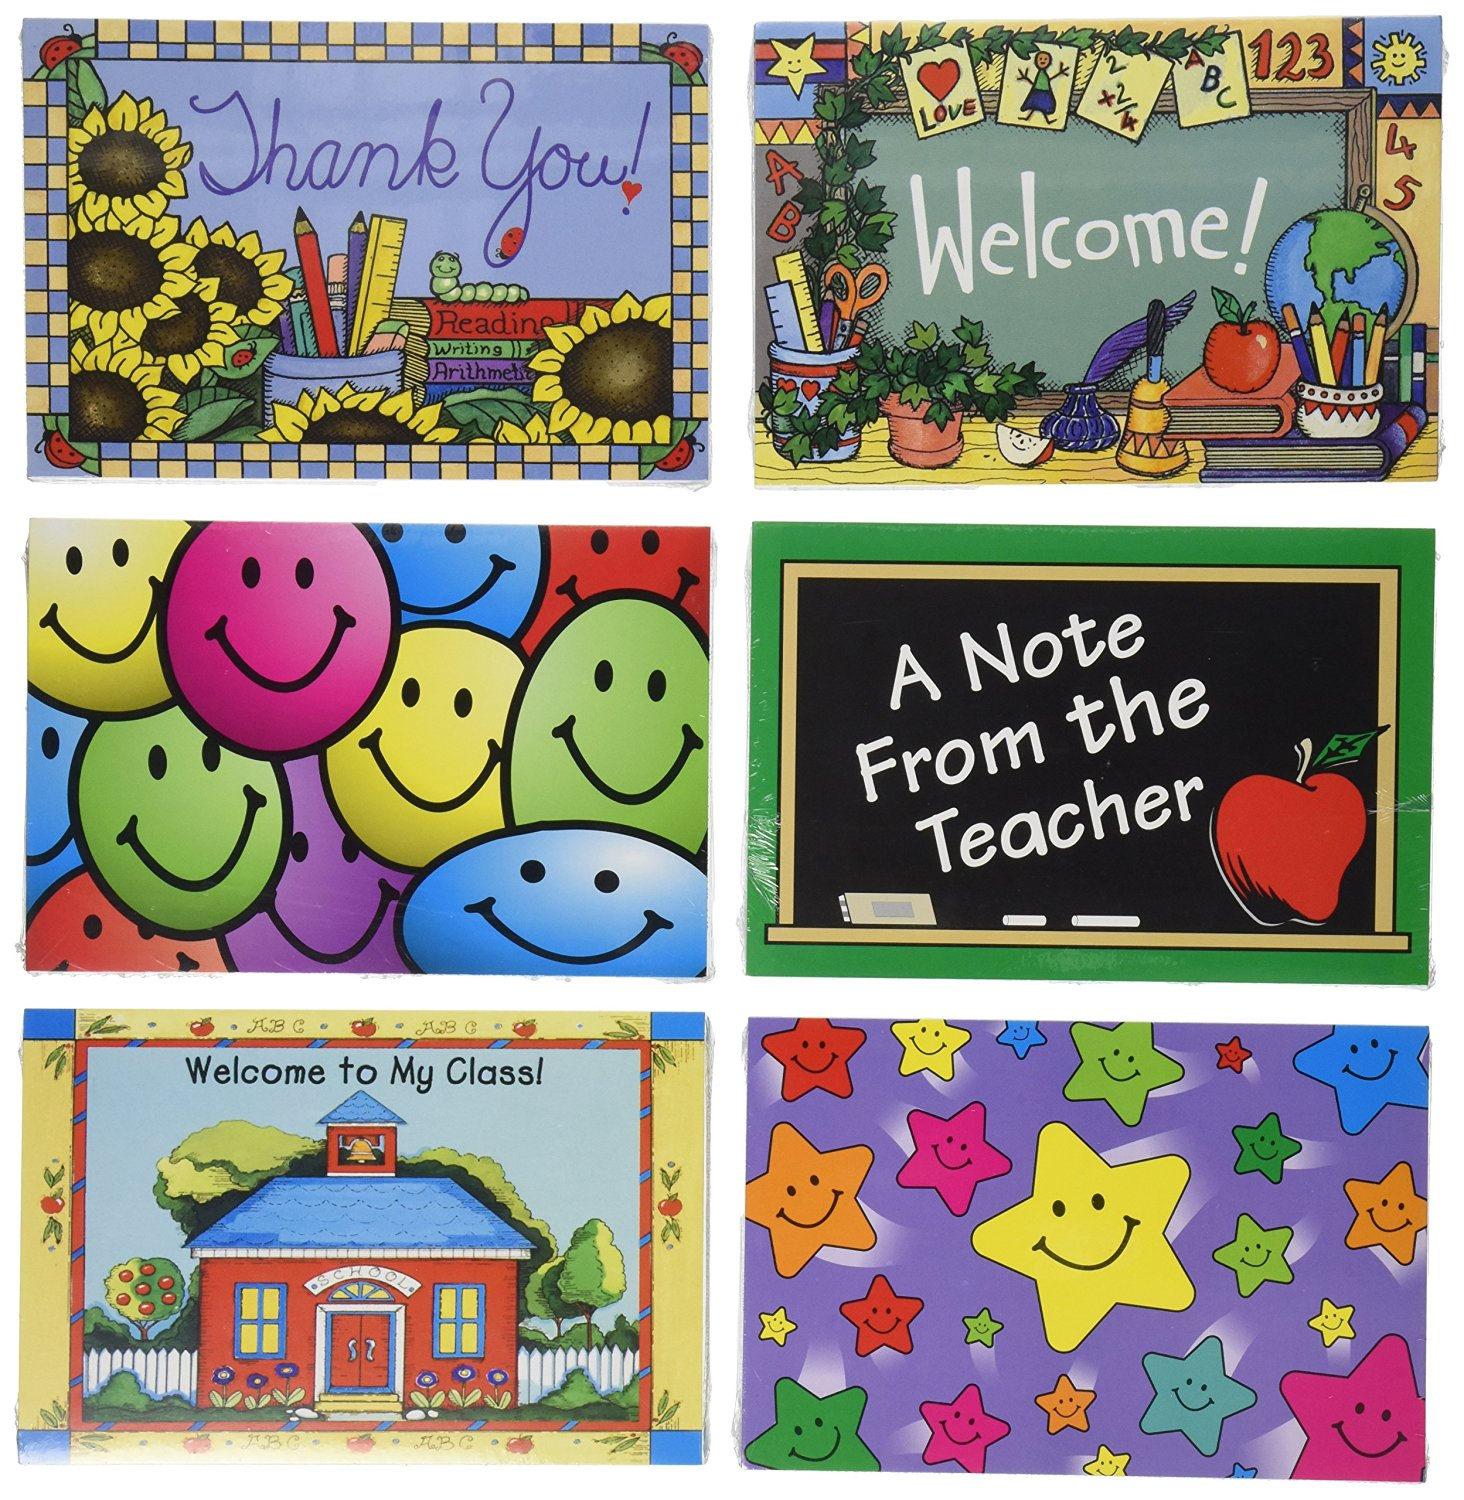 266f1996a3 School Smart 68248 School Year Postcards - Pack of 180 - Assorted Designs